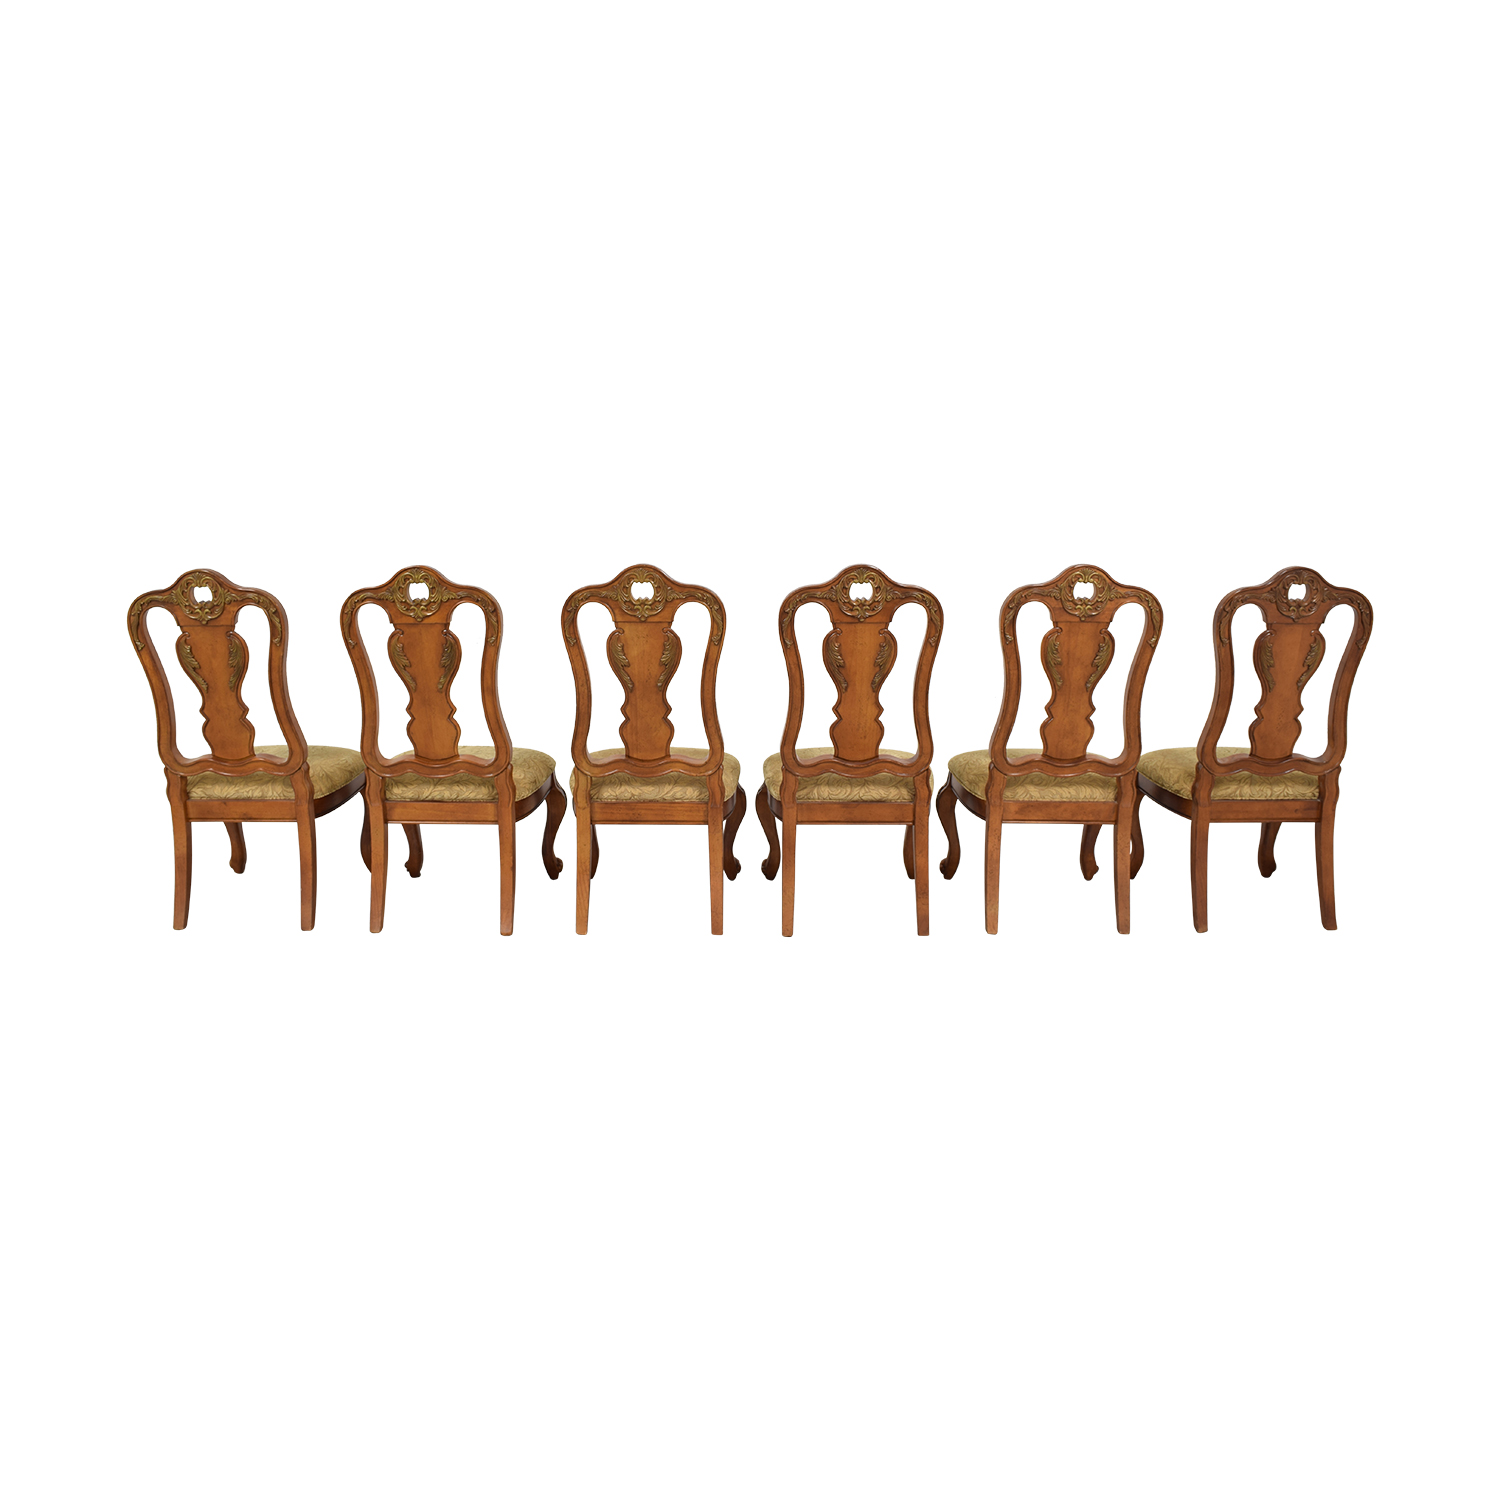 buy Raymour & Flanigan Carved Dining Chairs Raymour & Flanigan Chairs